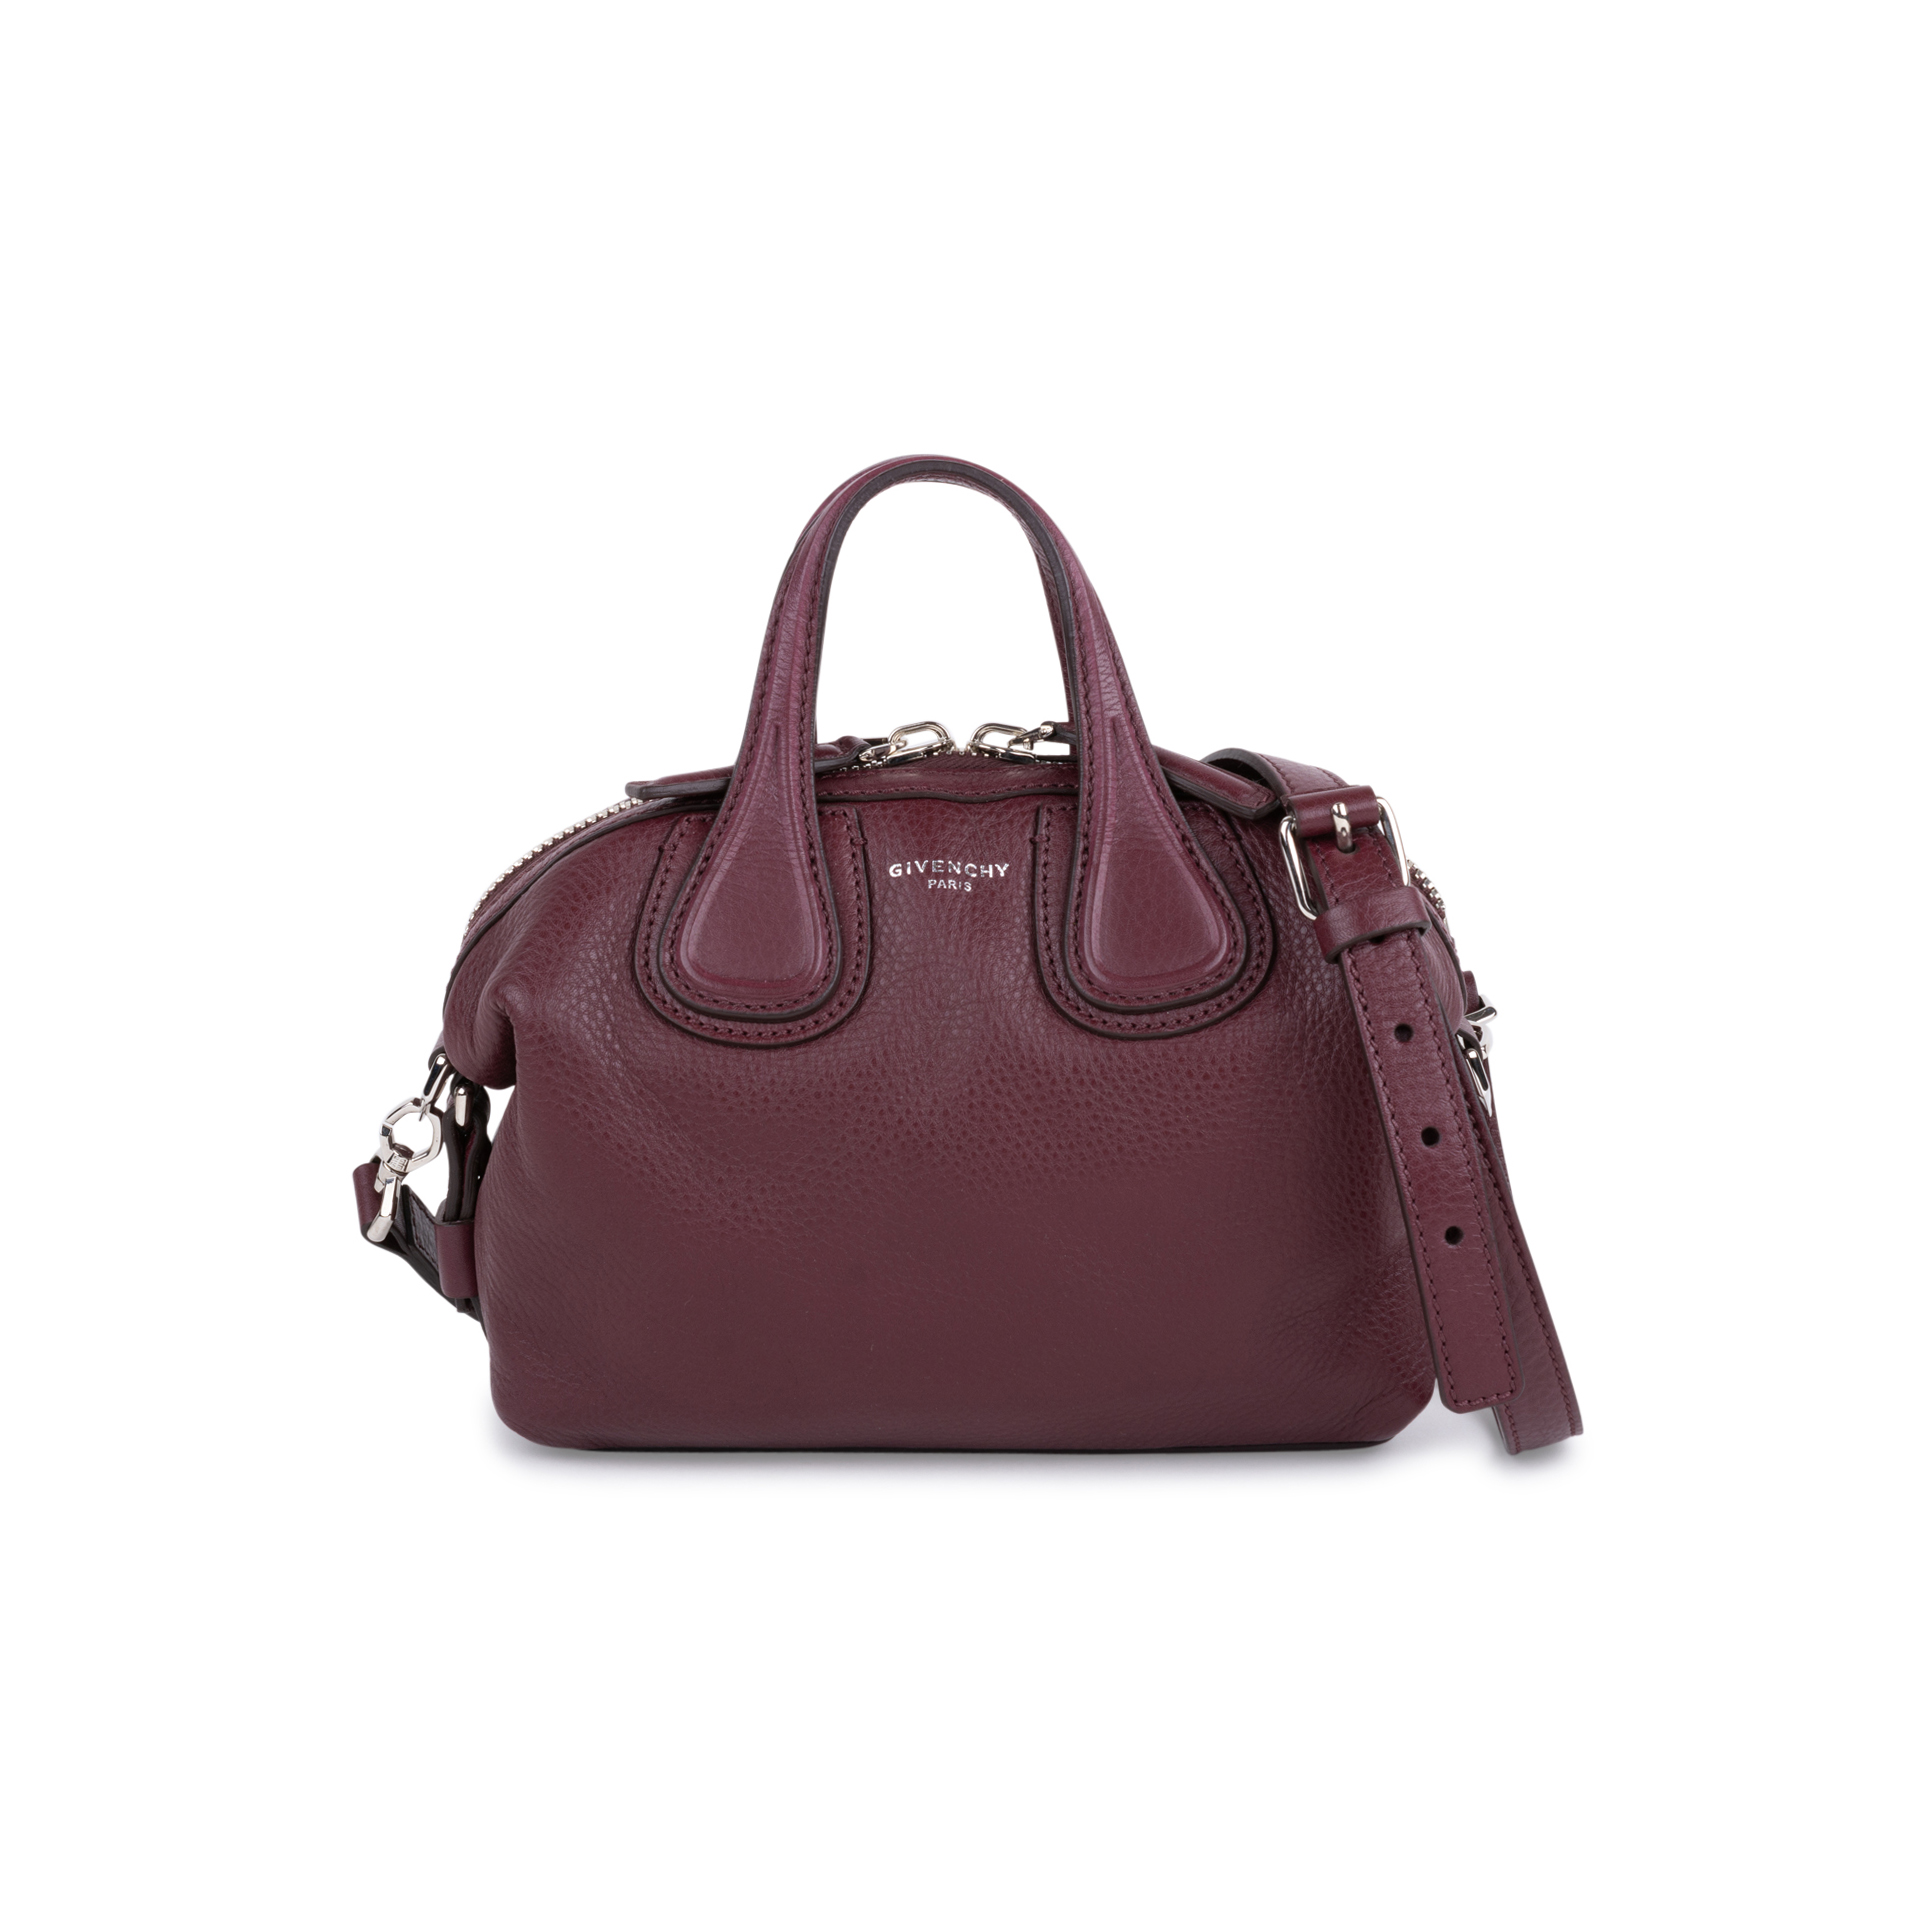 0e25ce4efb80 Authentic Second Hand Givenchy Micro Nightingale Bag (PSS-034-00023 ...